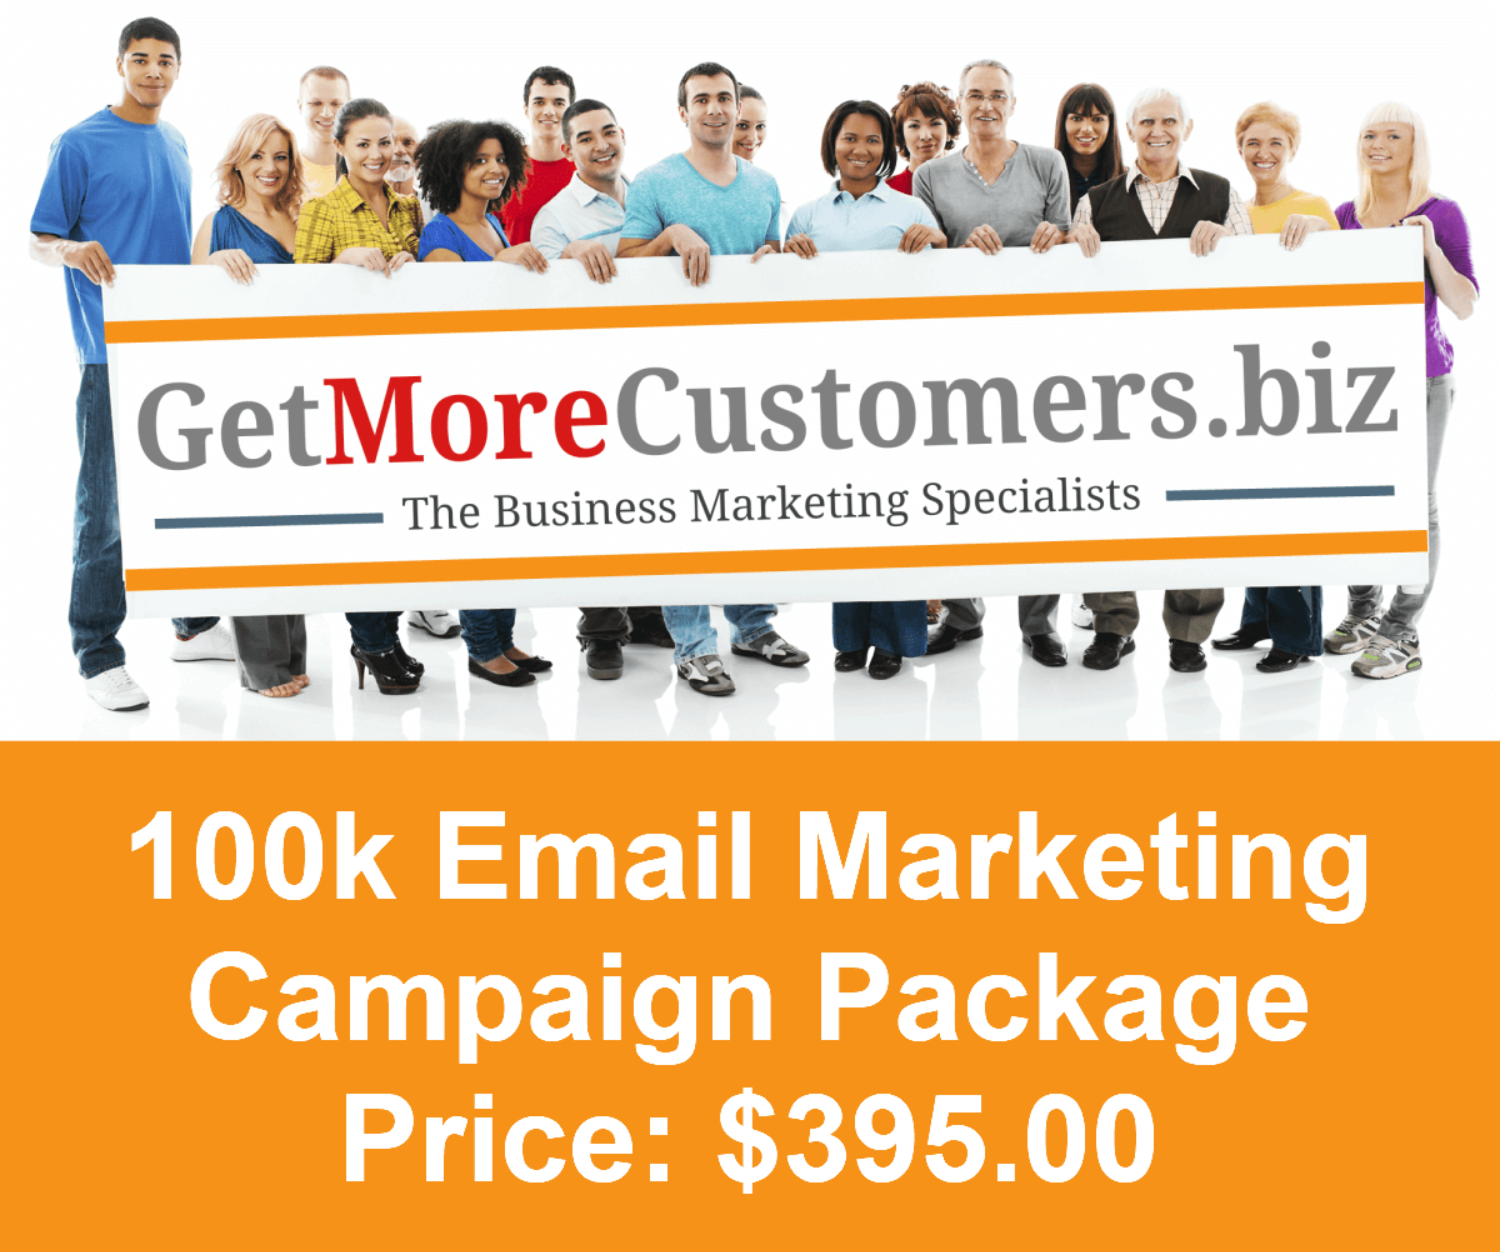 100k Email Campaign - $395.00